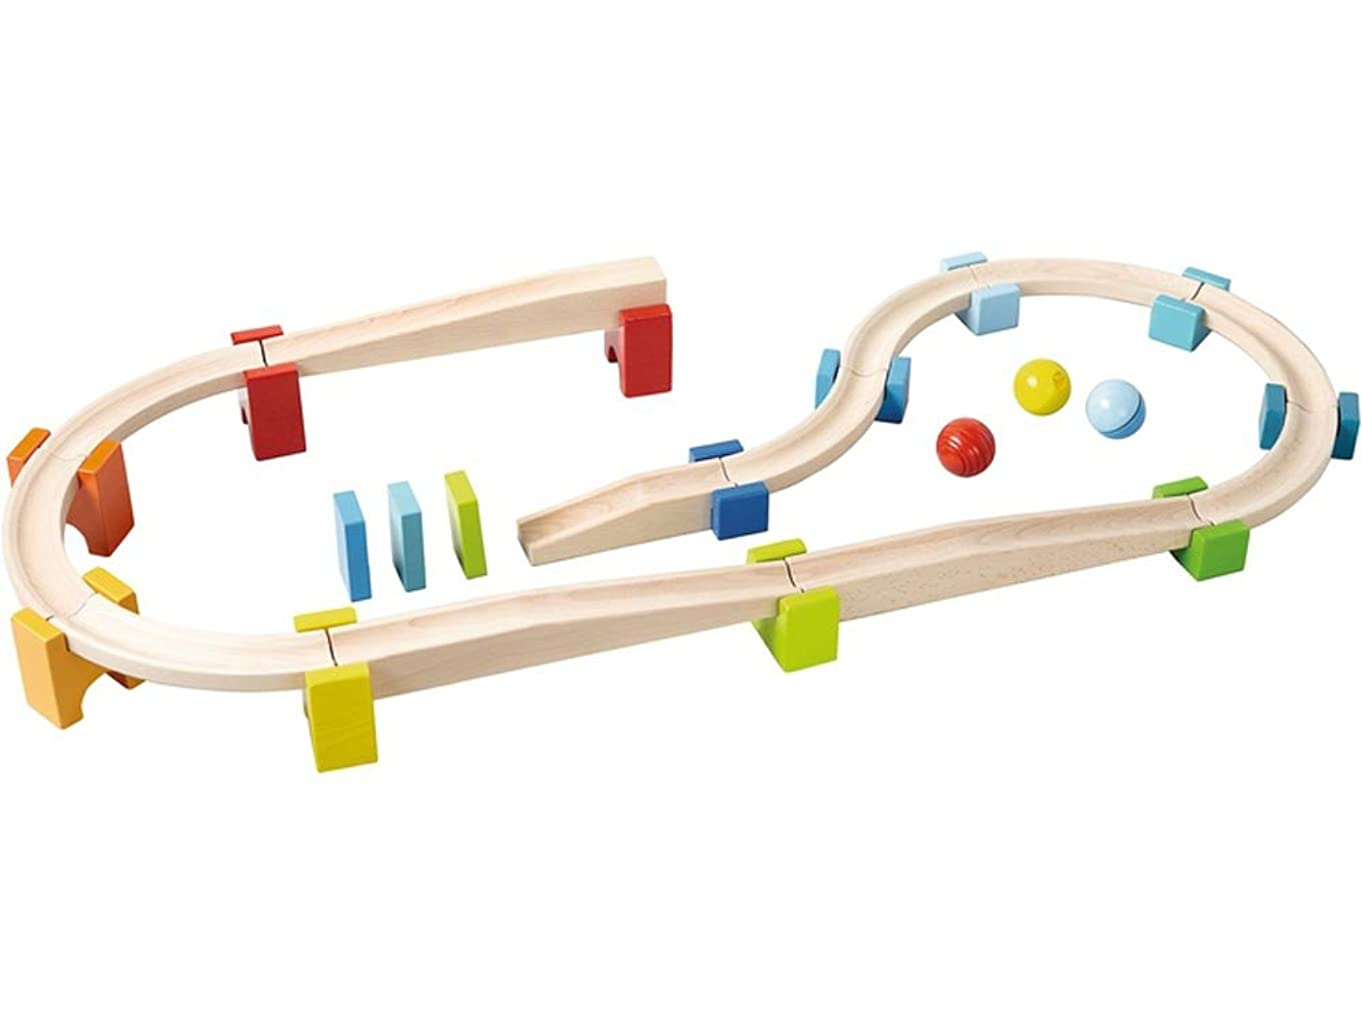 HABA My First Ball Track - Large Starter Set 30 Piece Building System (Made in Germany)